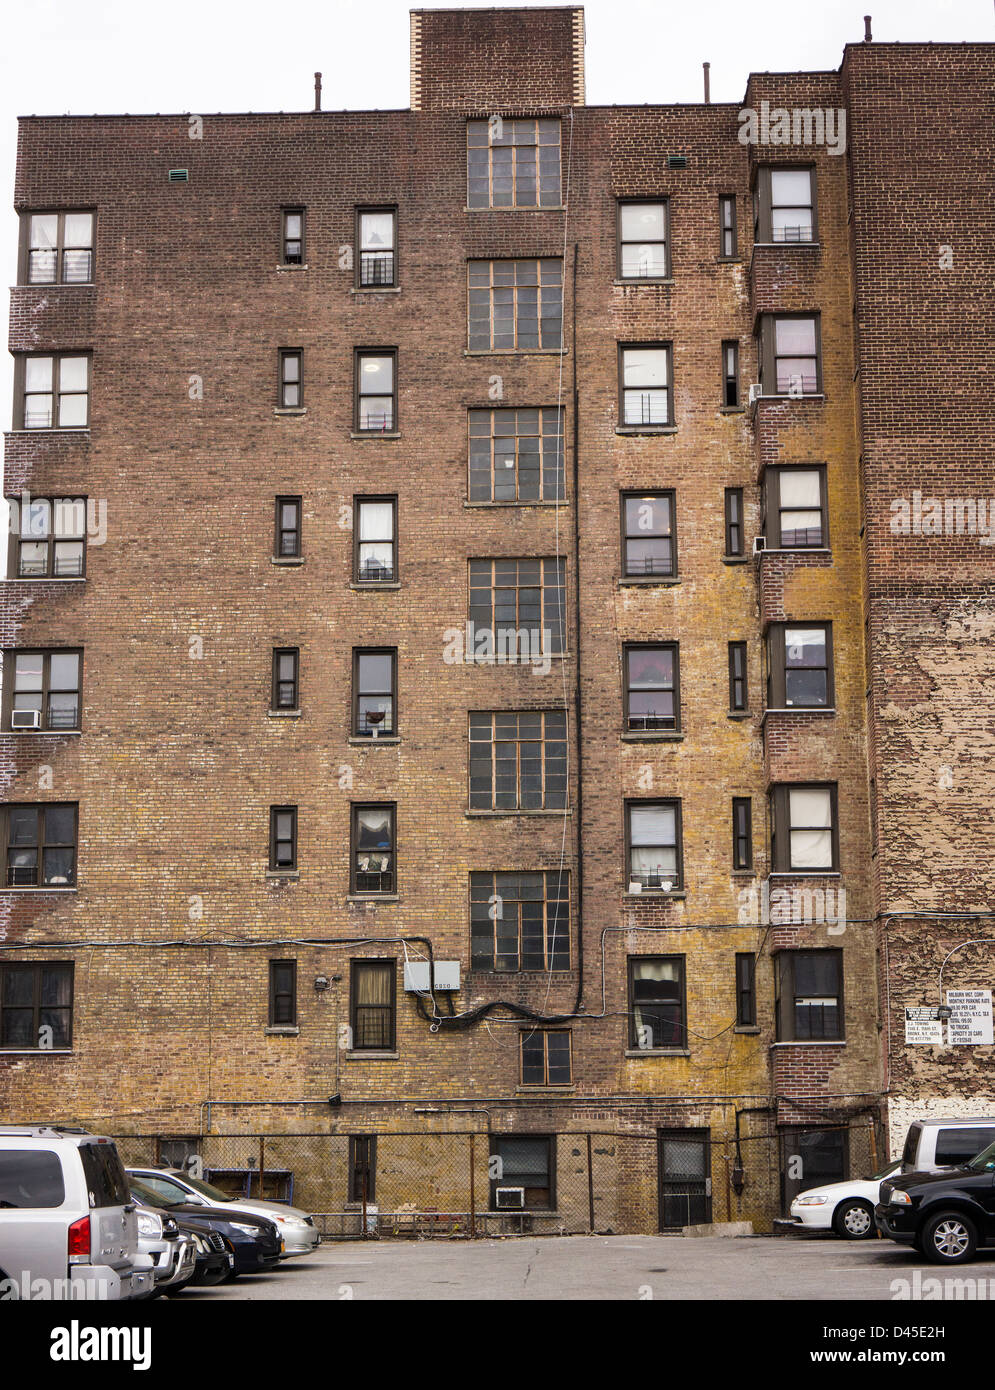 Brick Apartment Building brick walls and windows on apartment buildings in manhattan in new